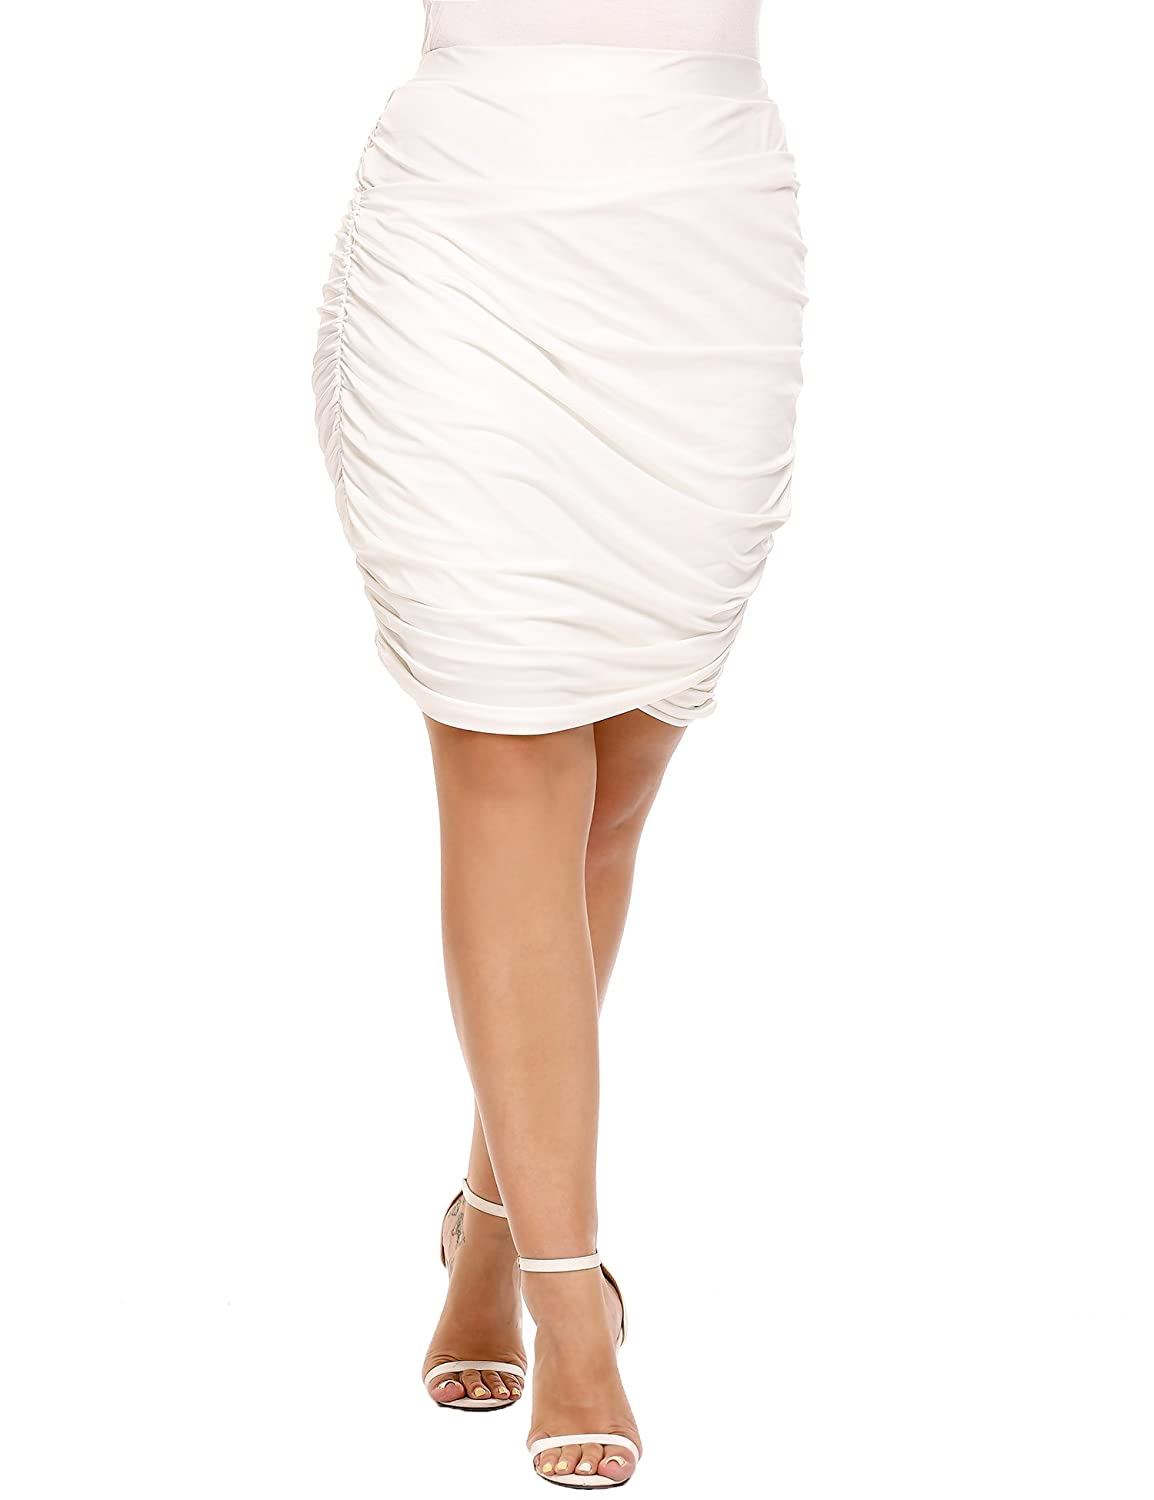 IN'VOLAND Women's Plus Size Wrap Ruched Stretch Pleated Short Skirts Mini Pencil Skirt INH015607